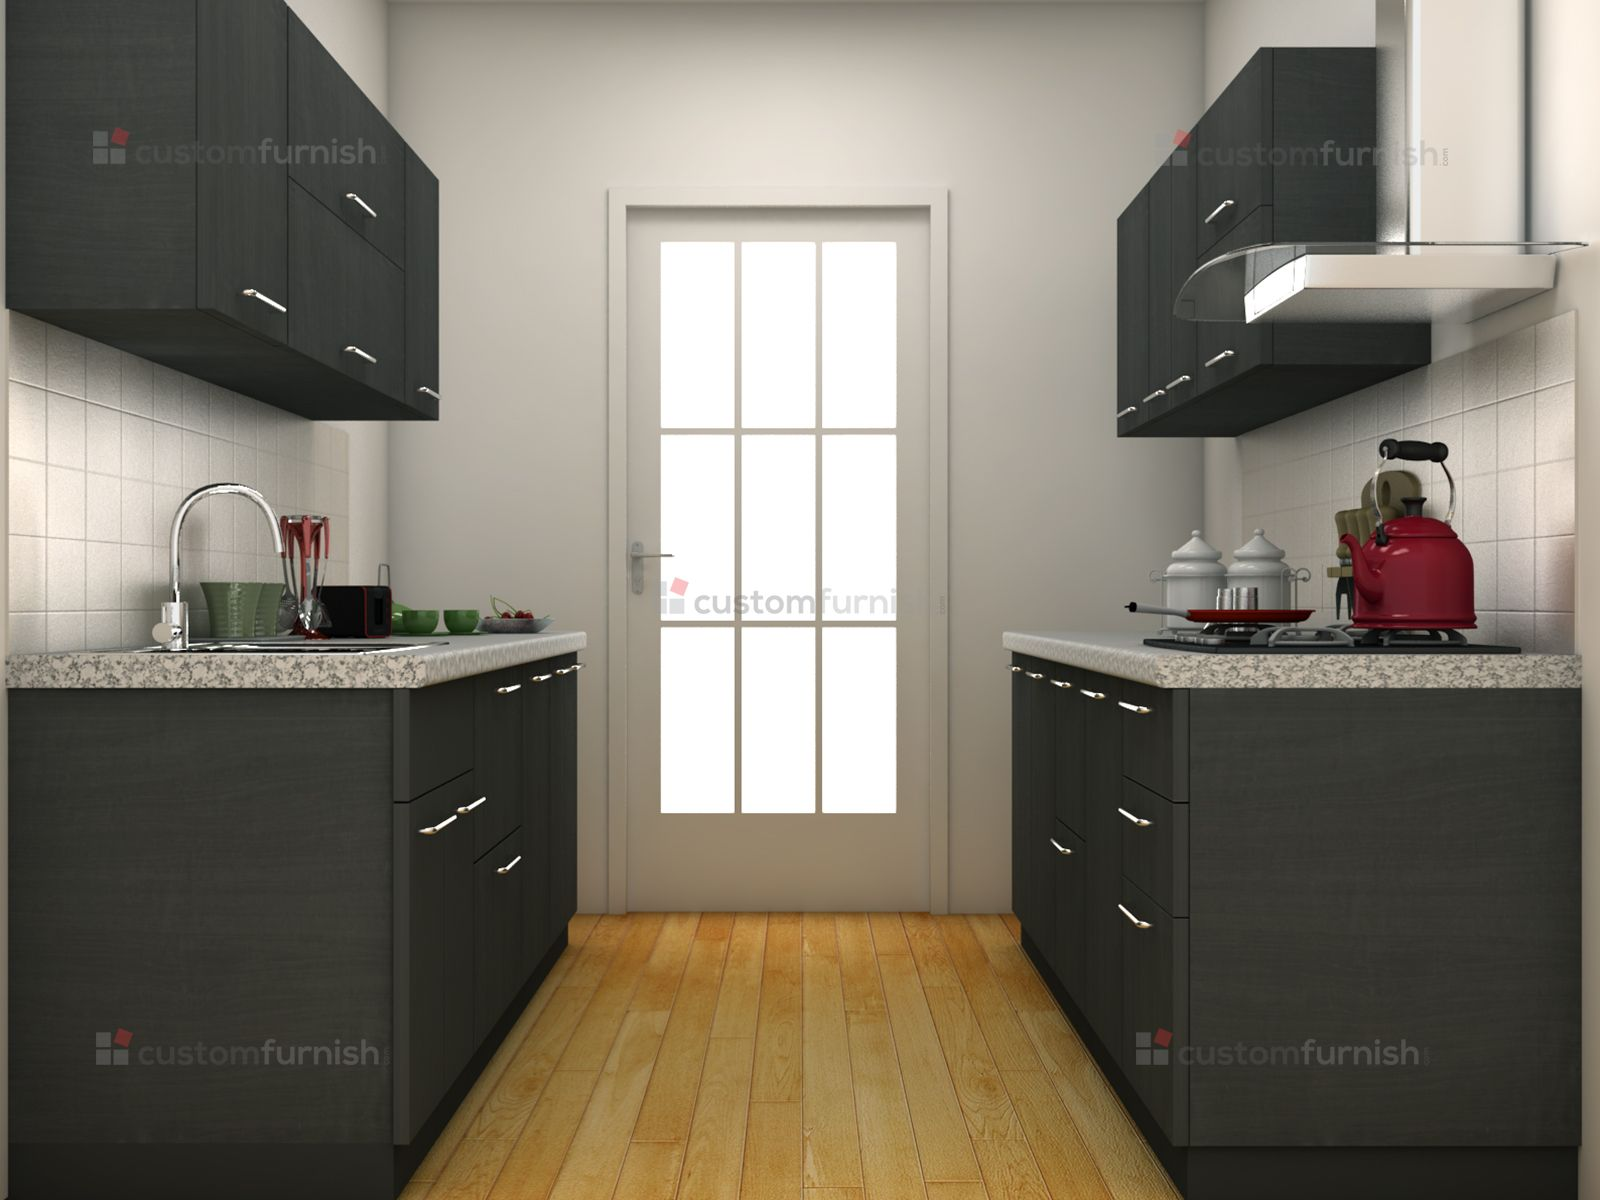 7 Best Images About Parallel Shaped Modular Kitchen Designs On